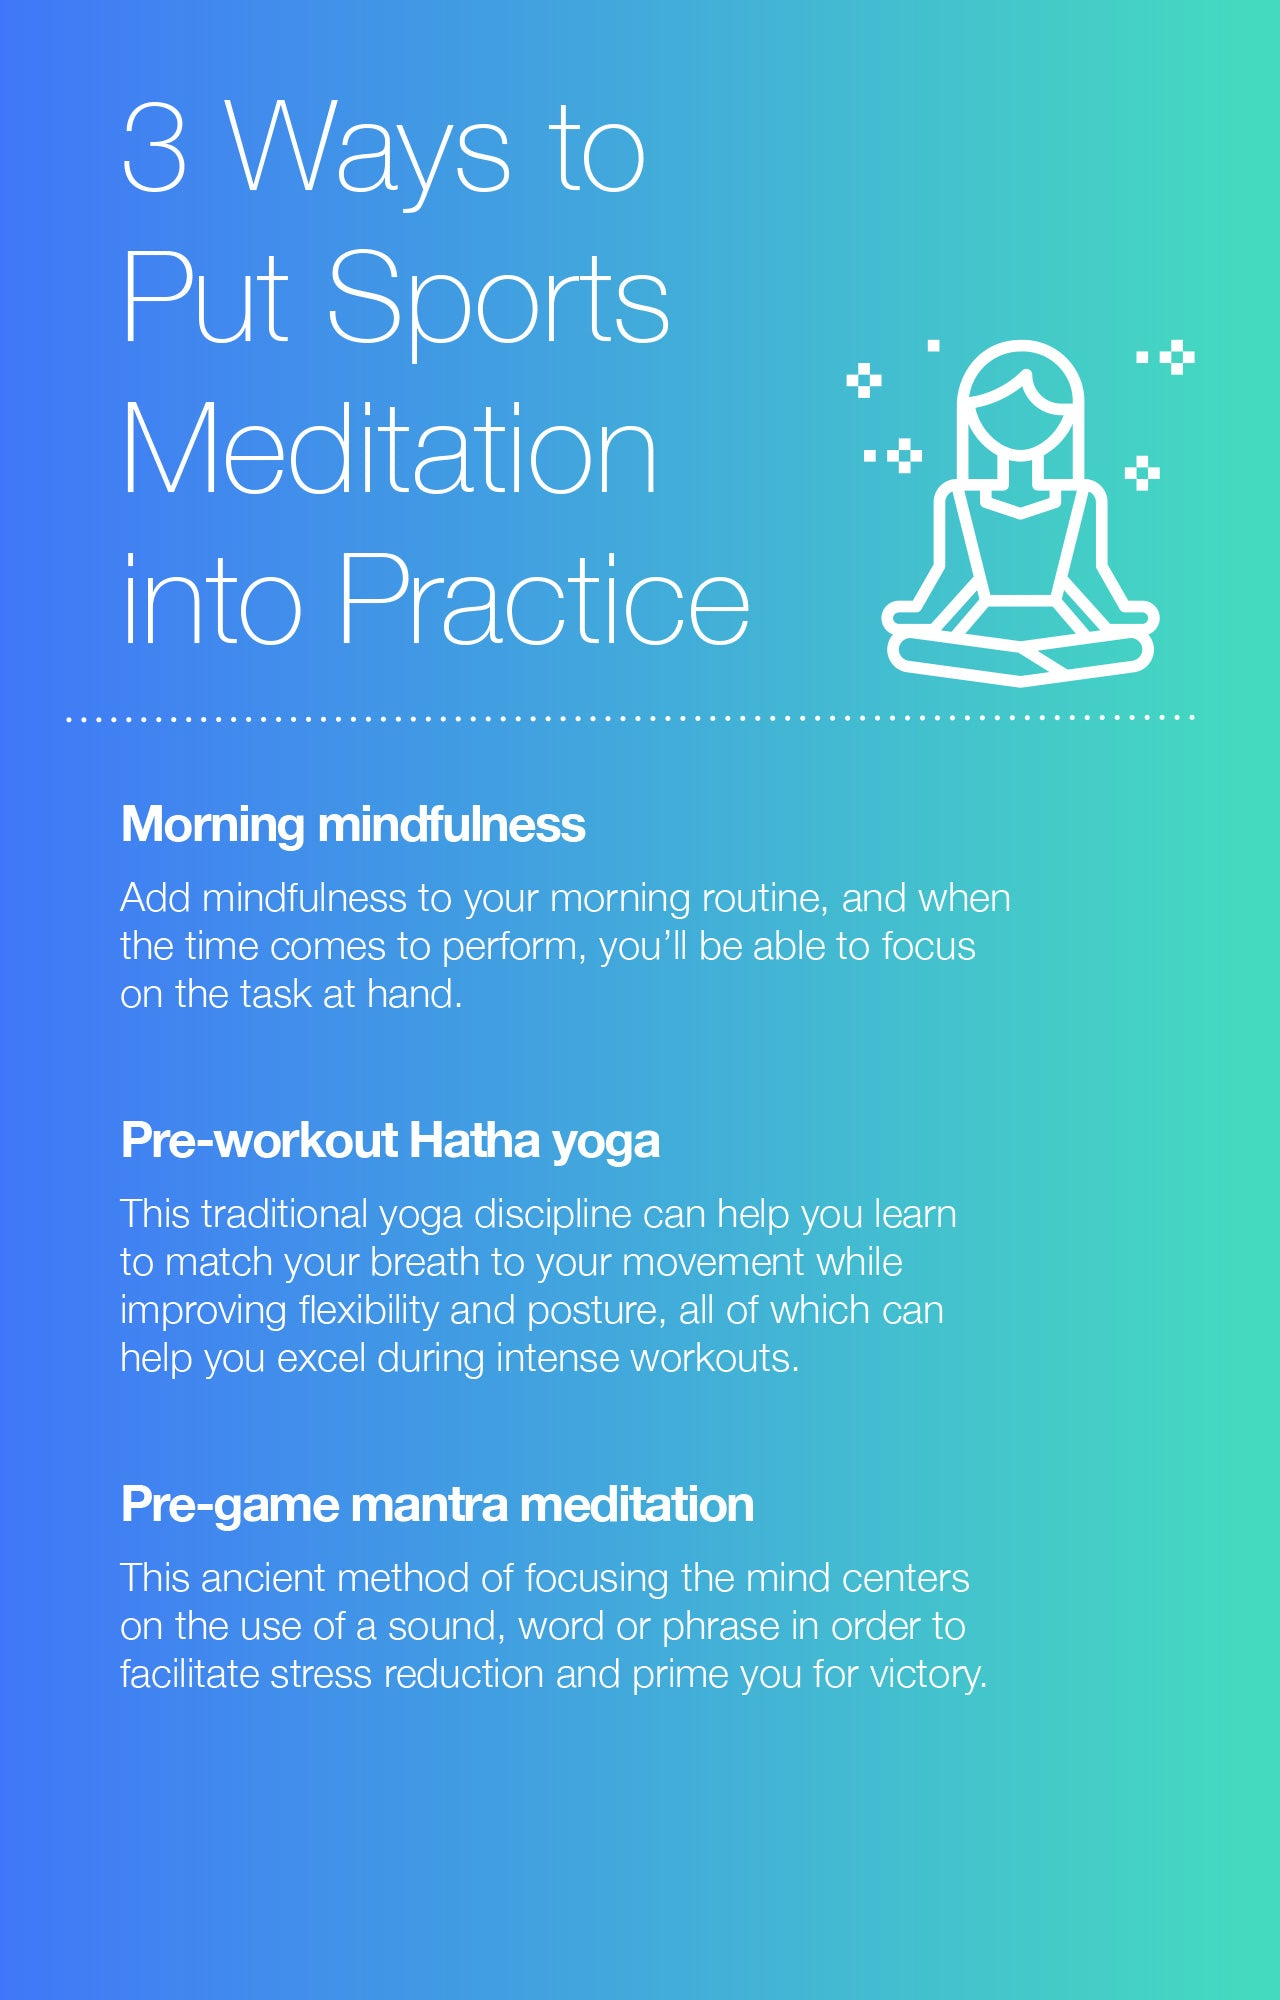 3 Ways to Put Sports Meditation into Practice